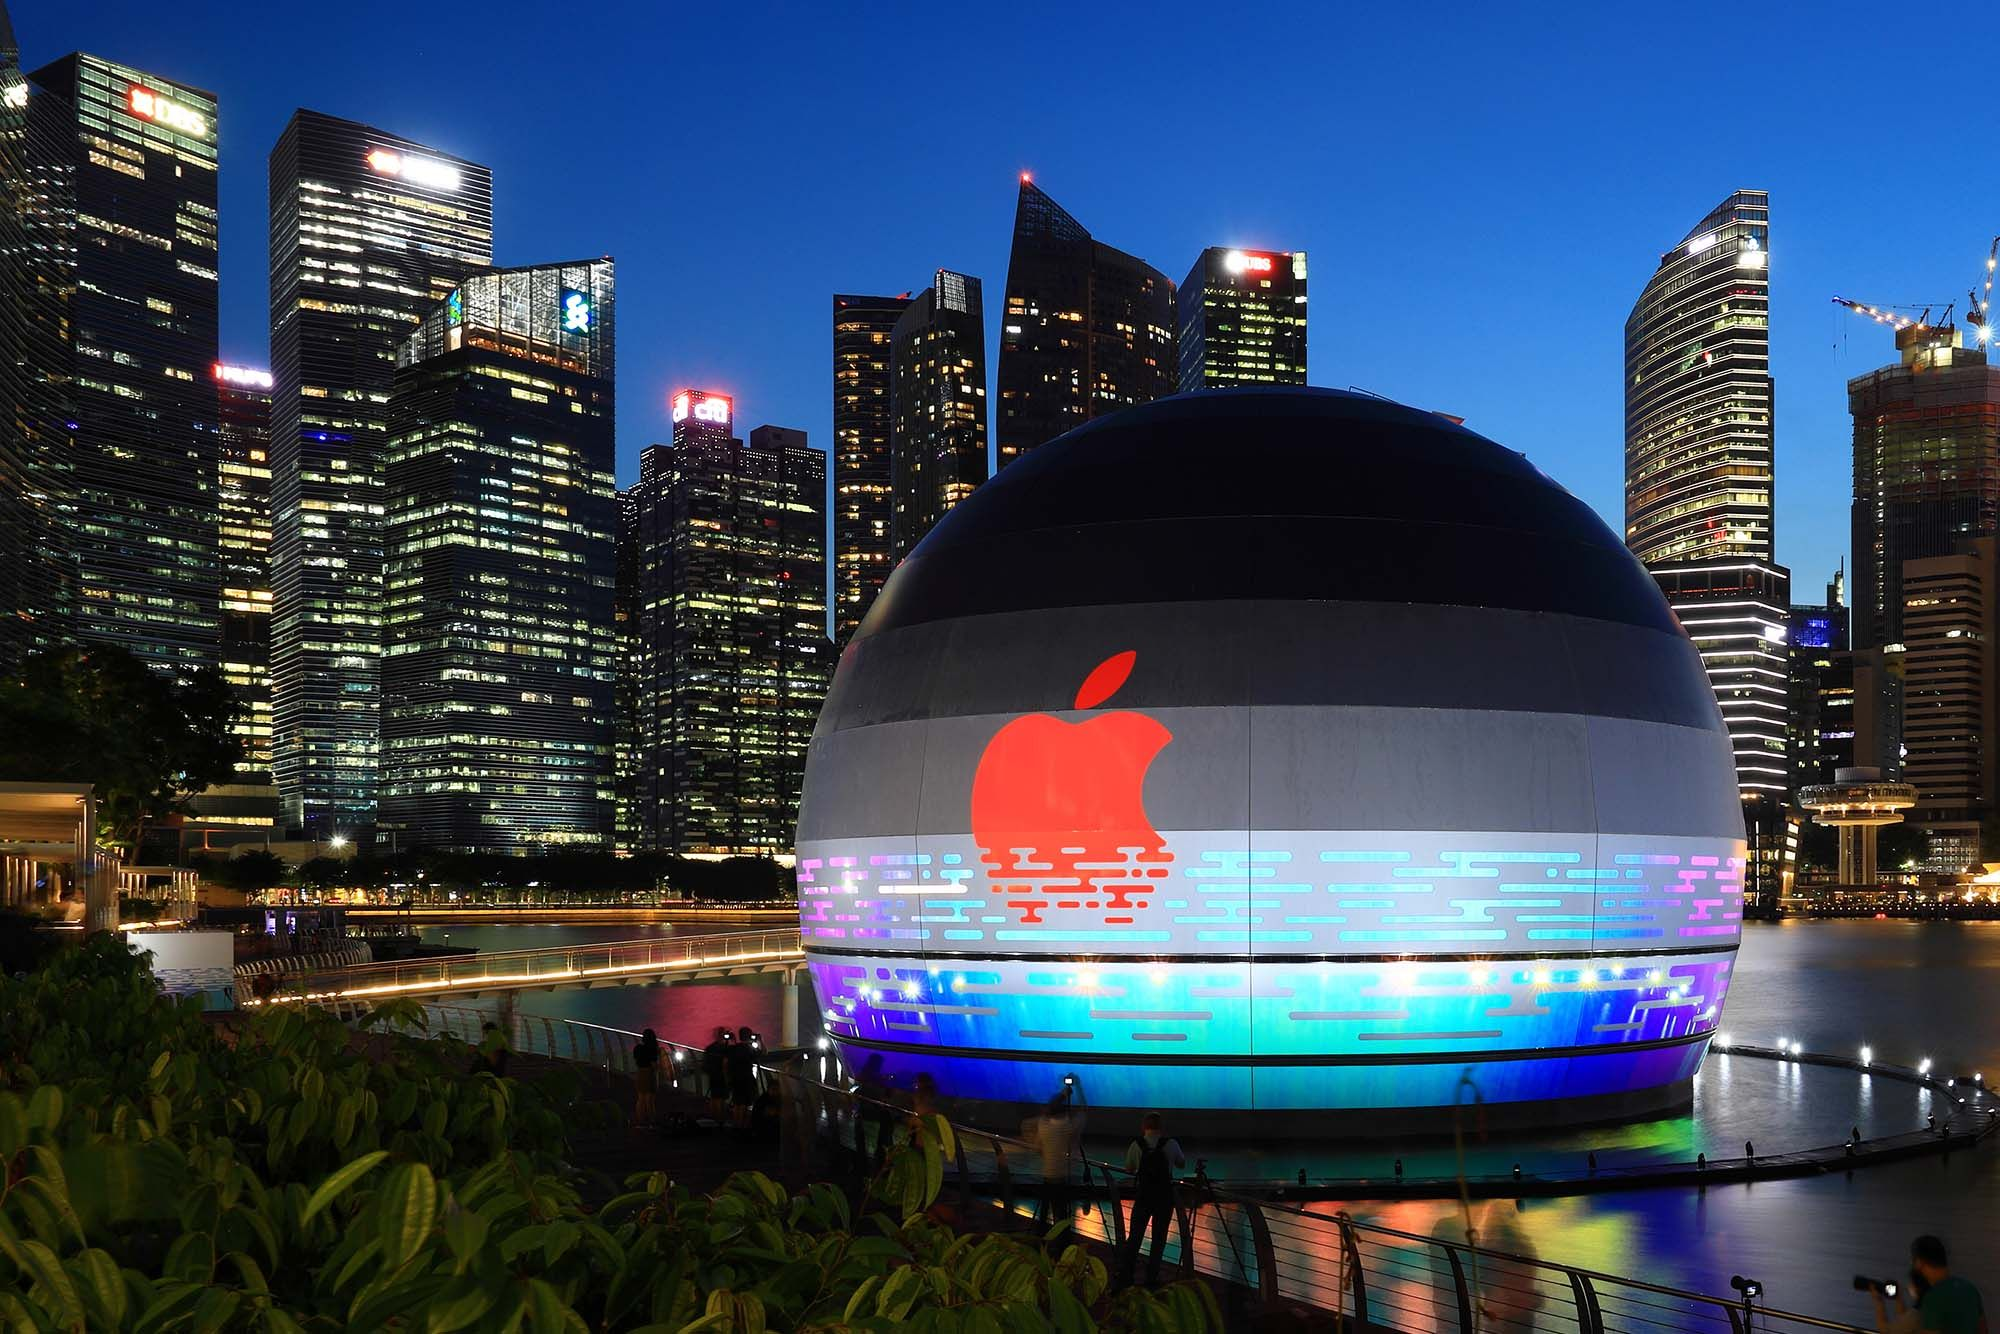 People take photos of the new Apple flagship store against the city skyline at Marina Bay Sands waterfront. (Photo: Getty Images)